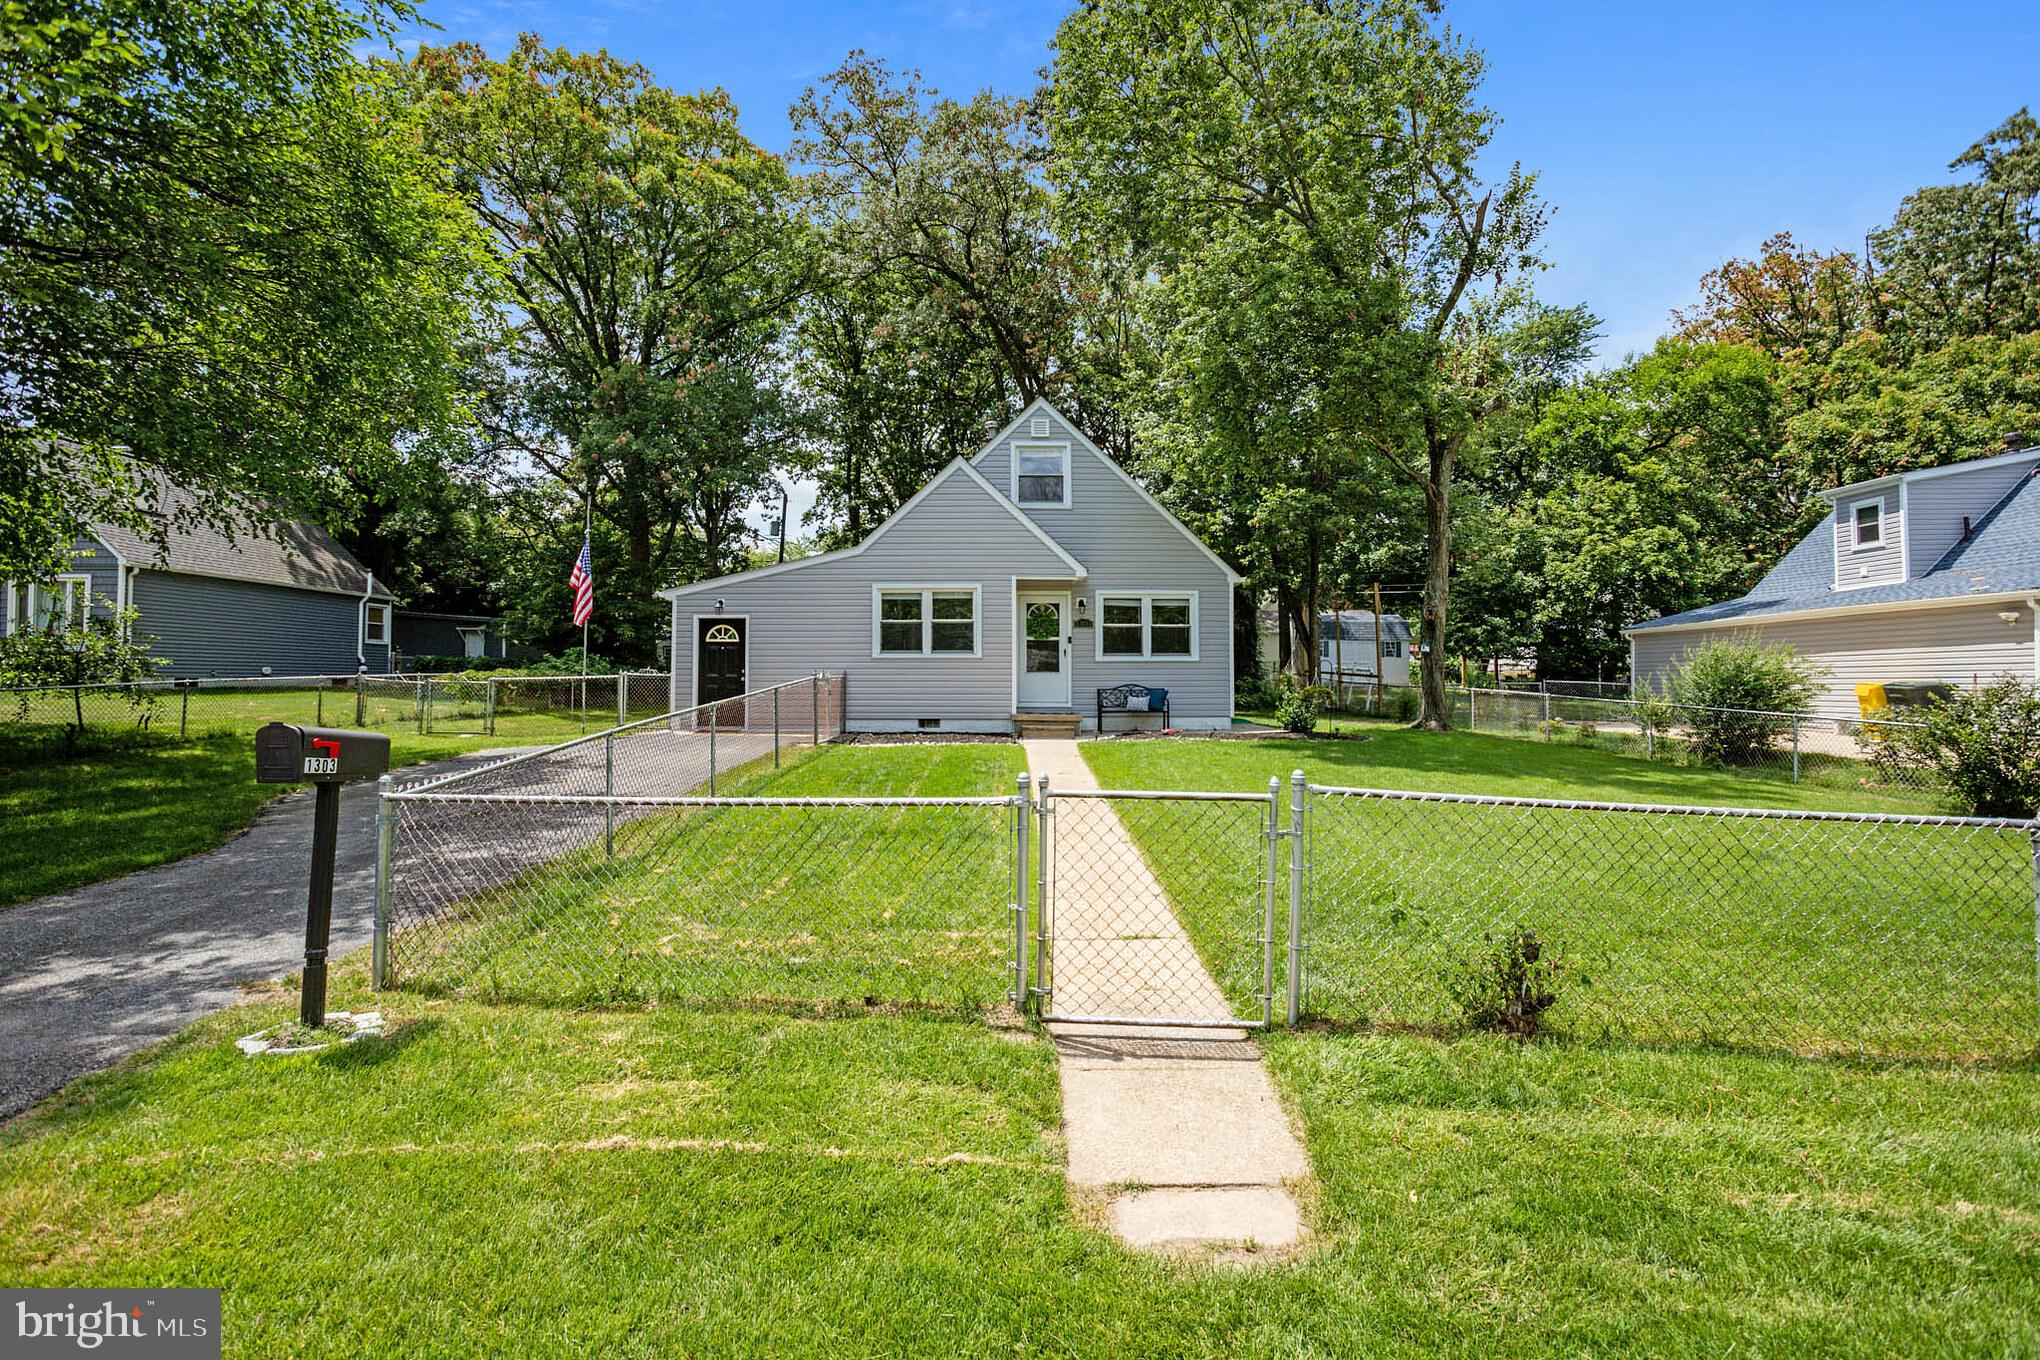 Gorgeous renovated cape cod. The open entry level and main floor flows with beautiful hardwood floor